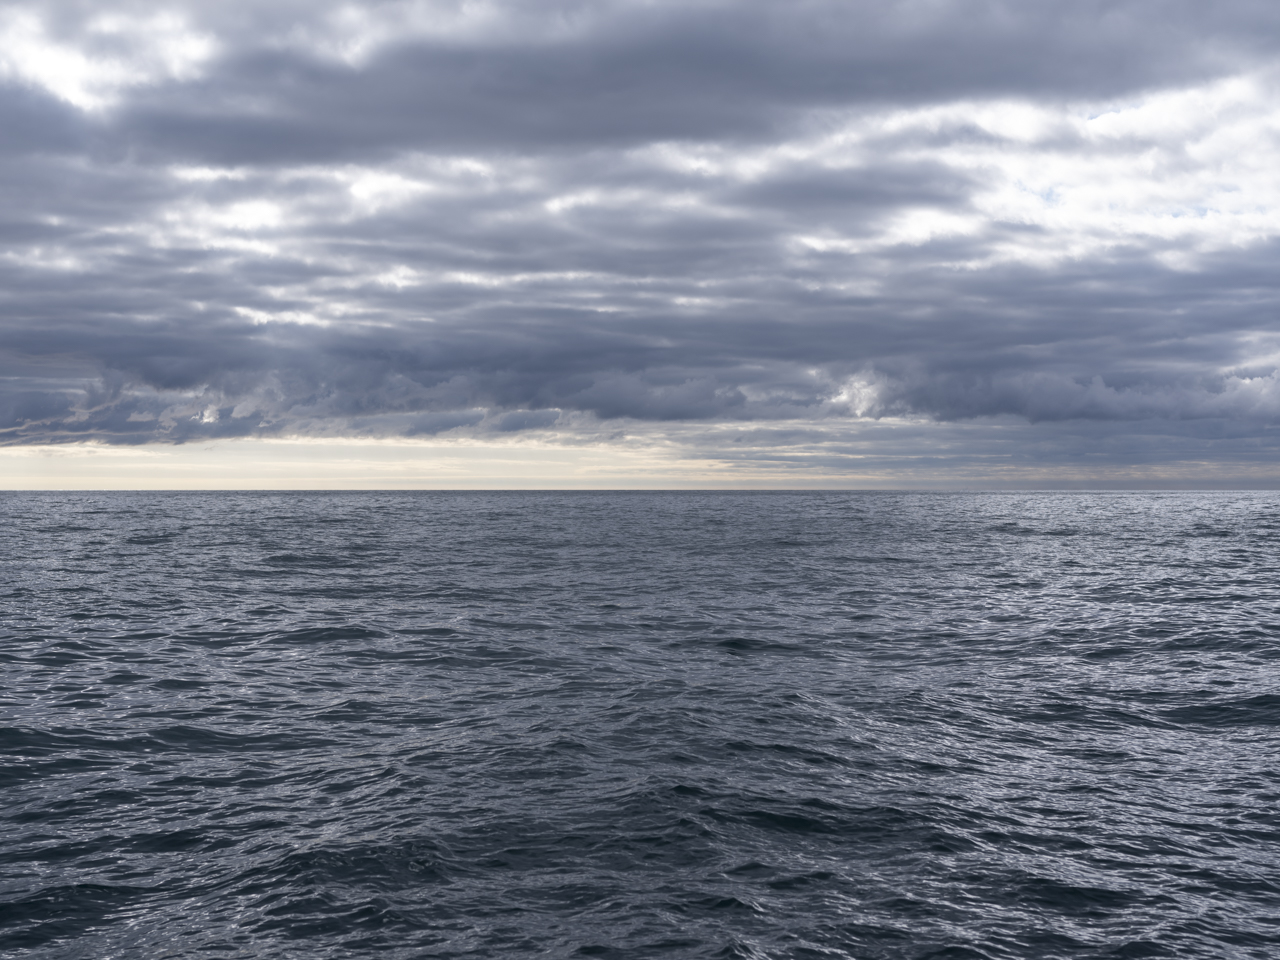 a storm settles over lake michigan with heavy clouds and deep blue water